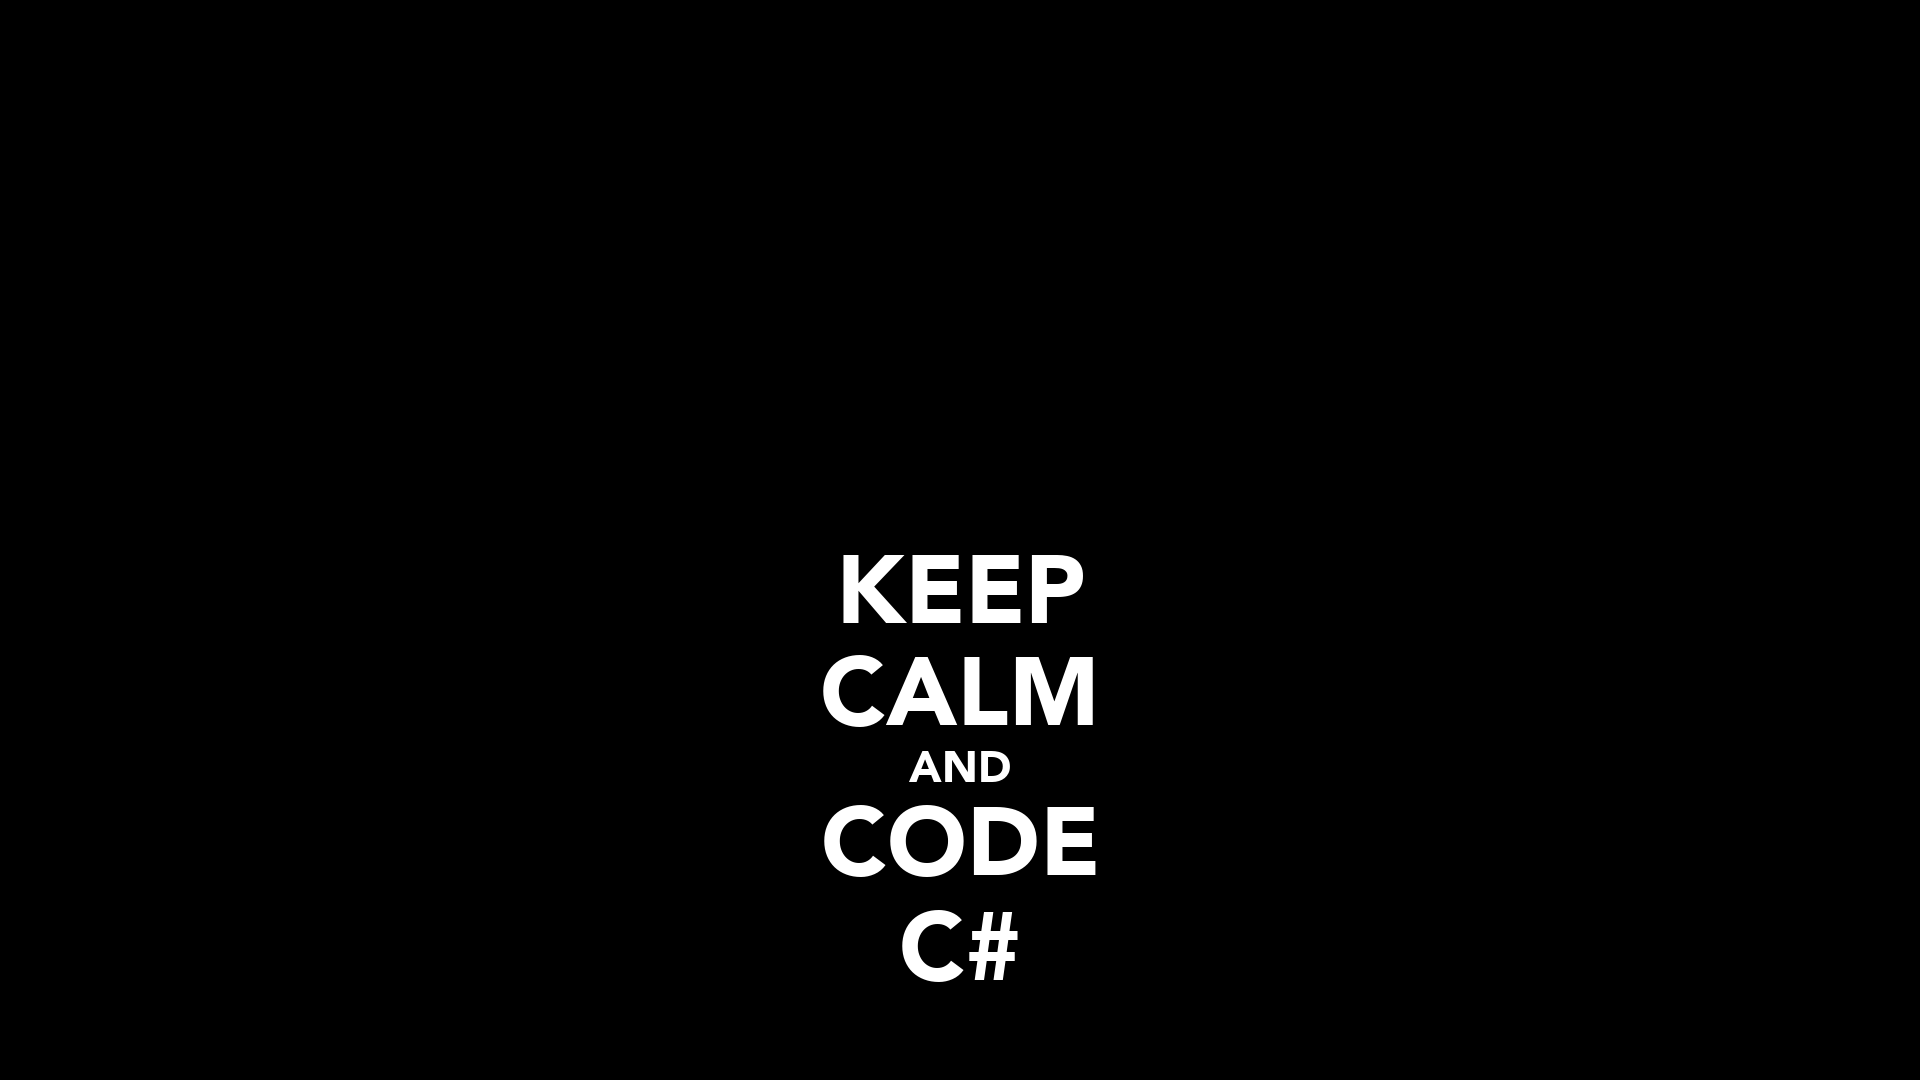 KEEP CALM AND CODE C# Poster